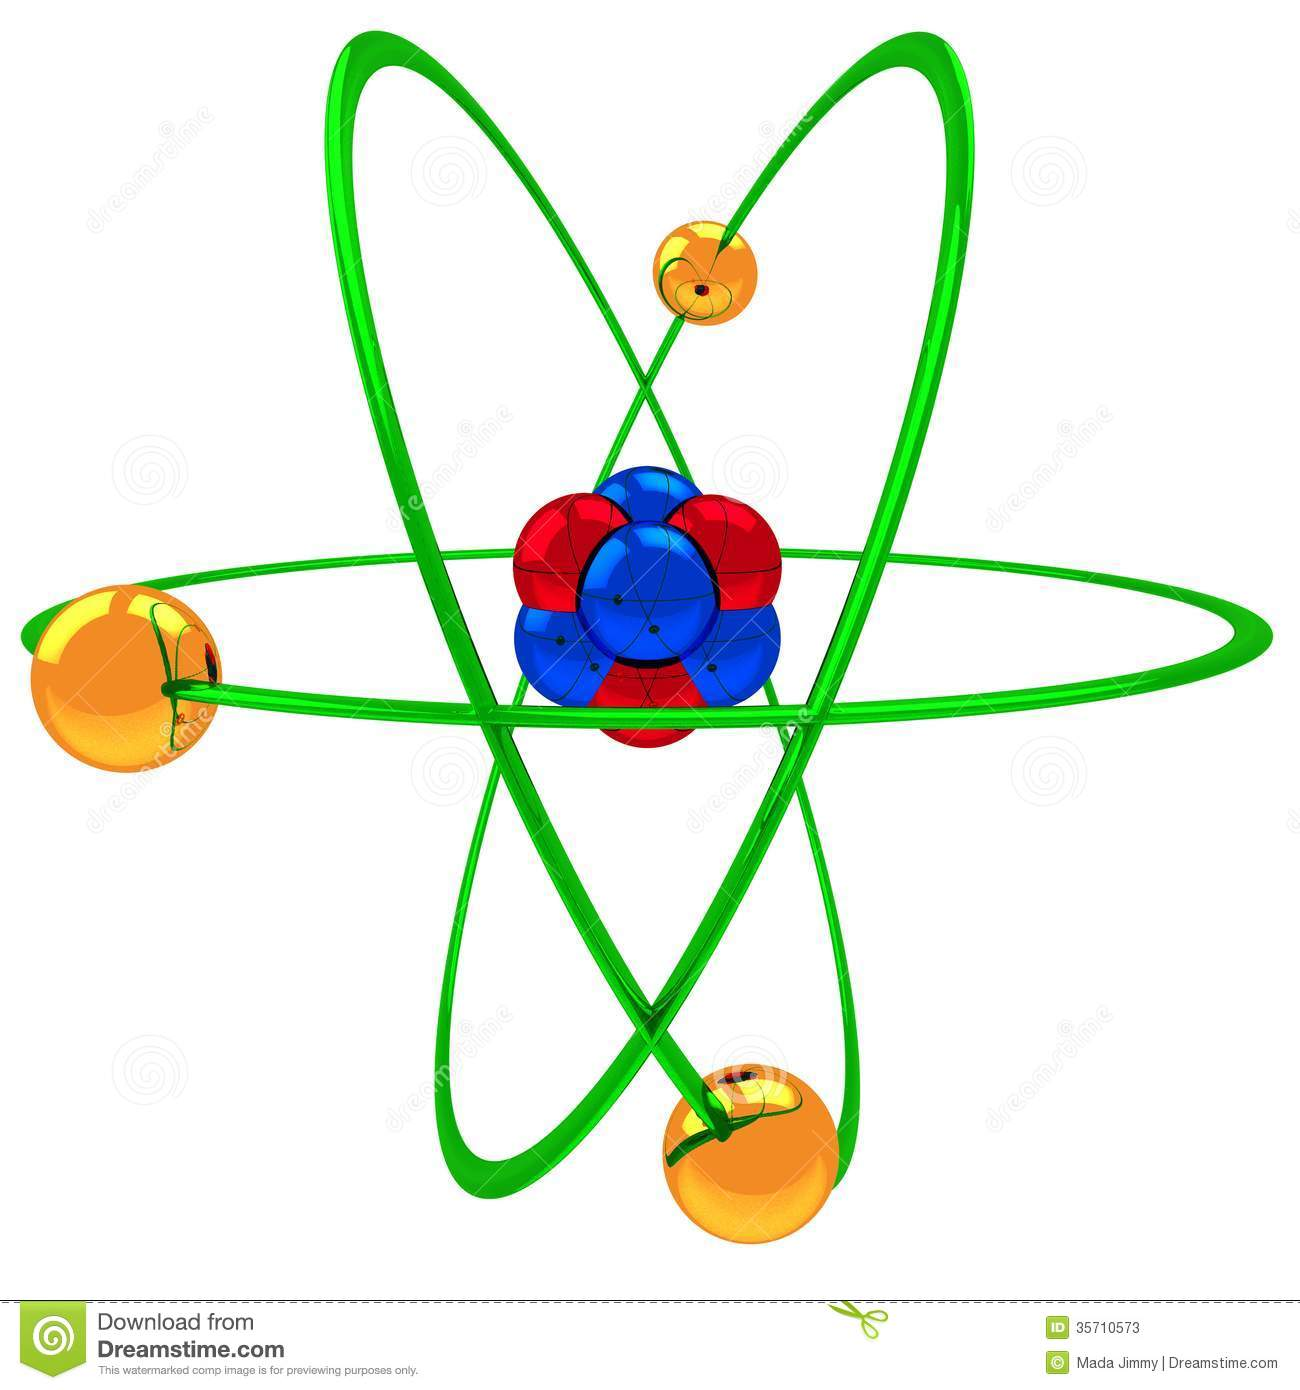 Atoms, Google search and 3d on Pinterest